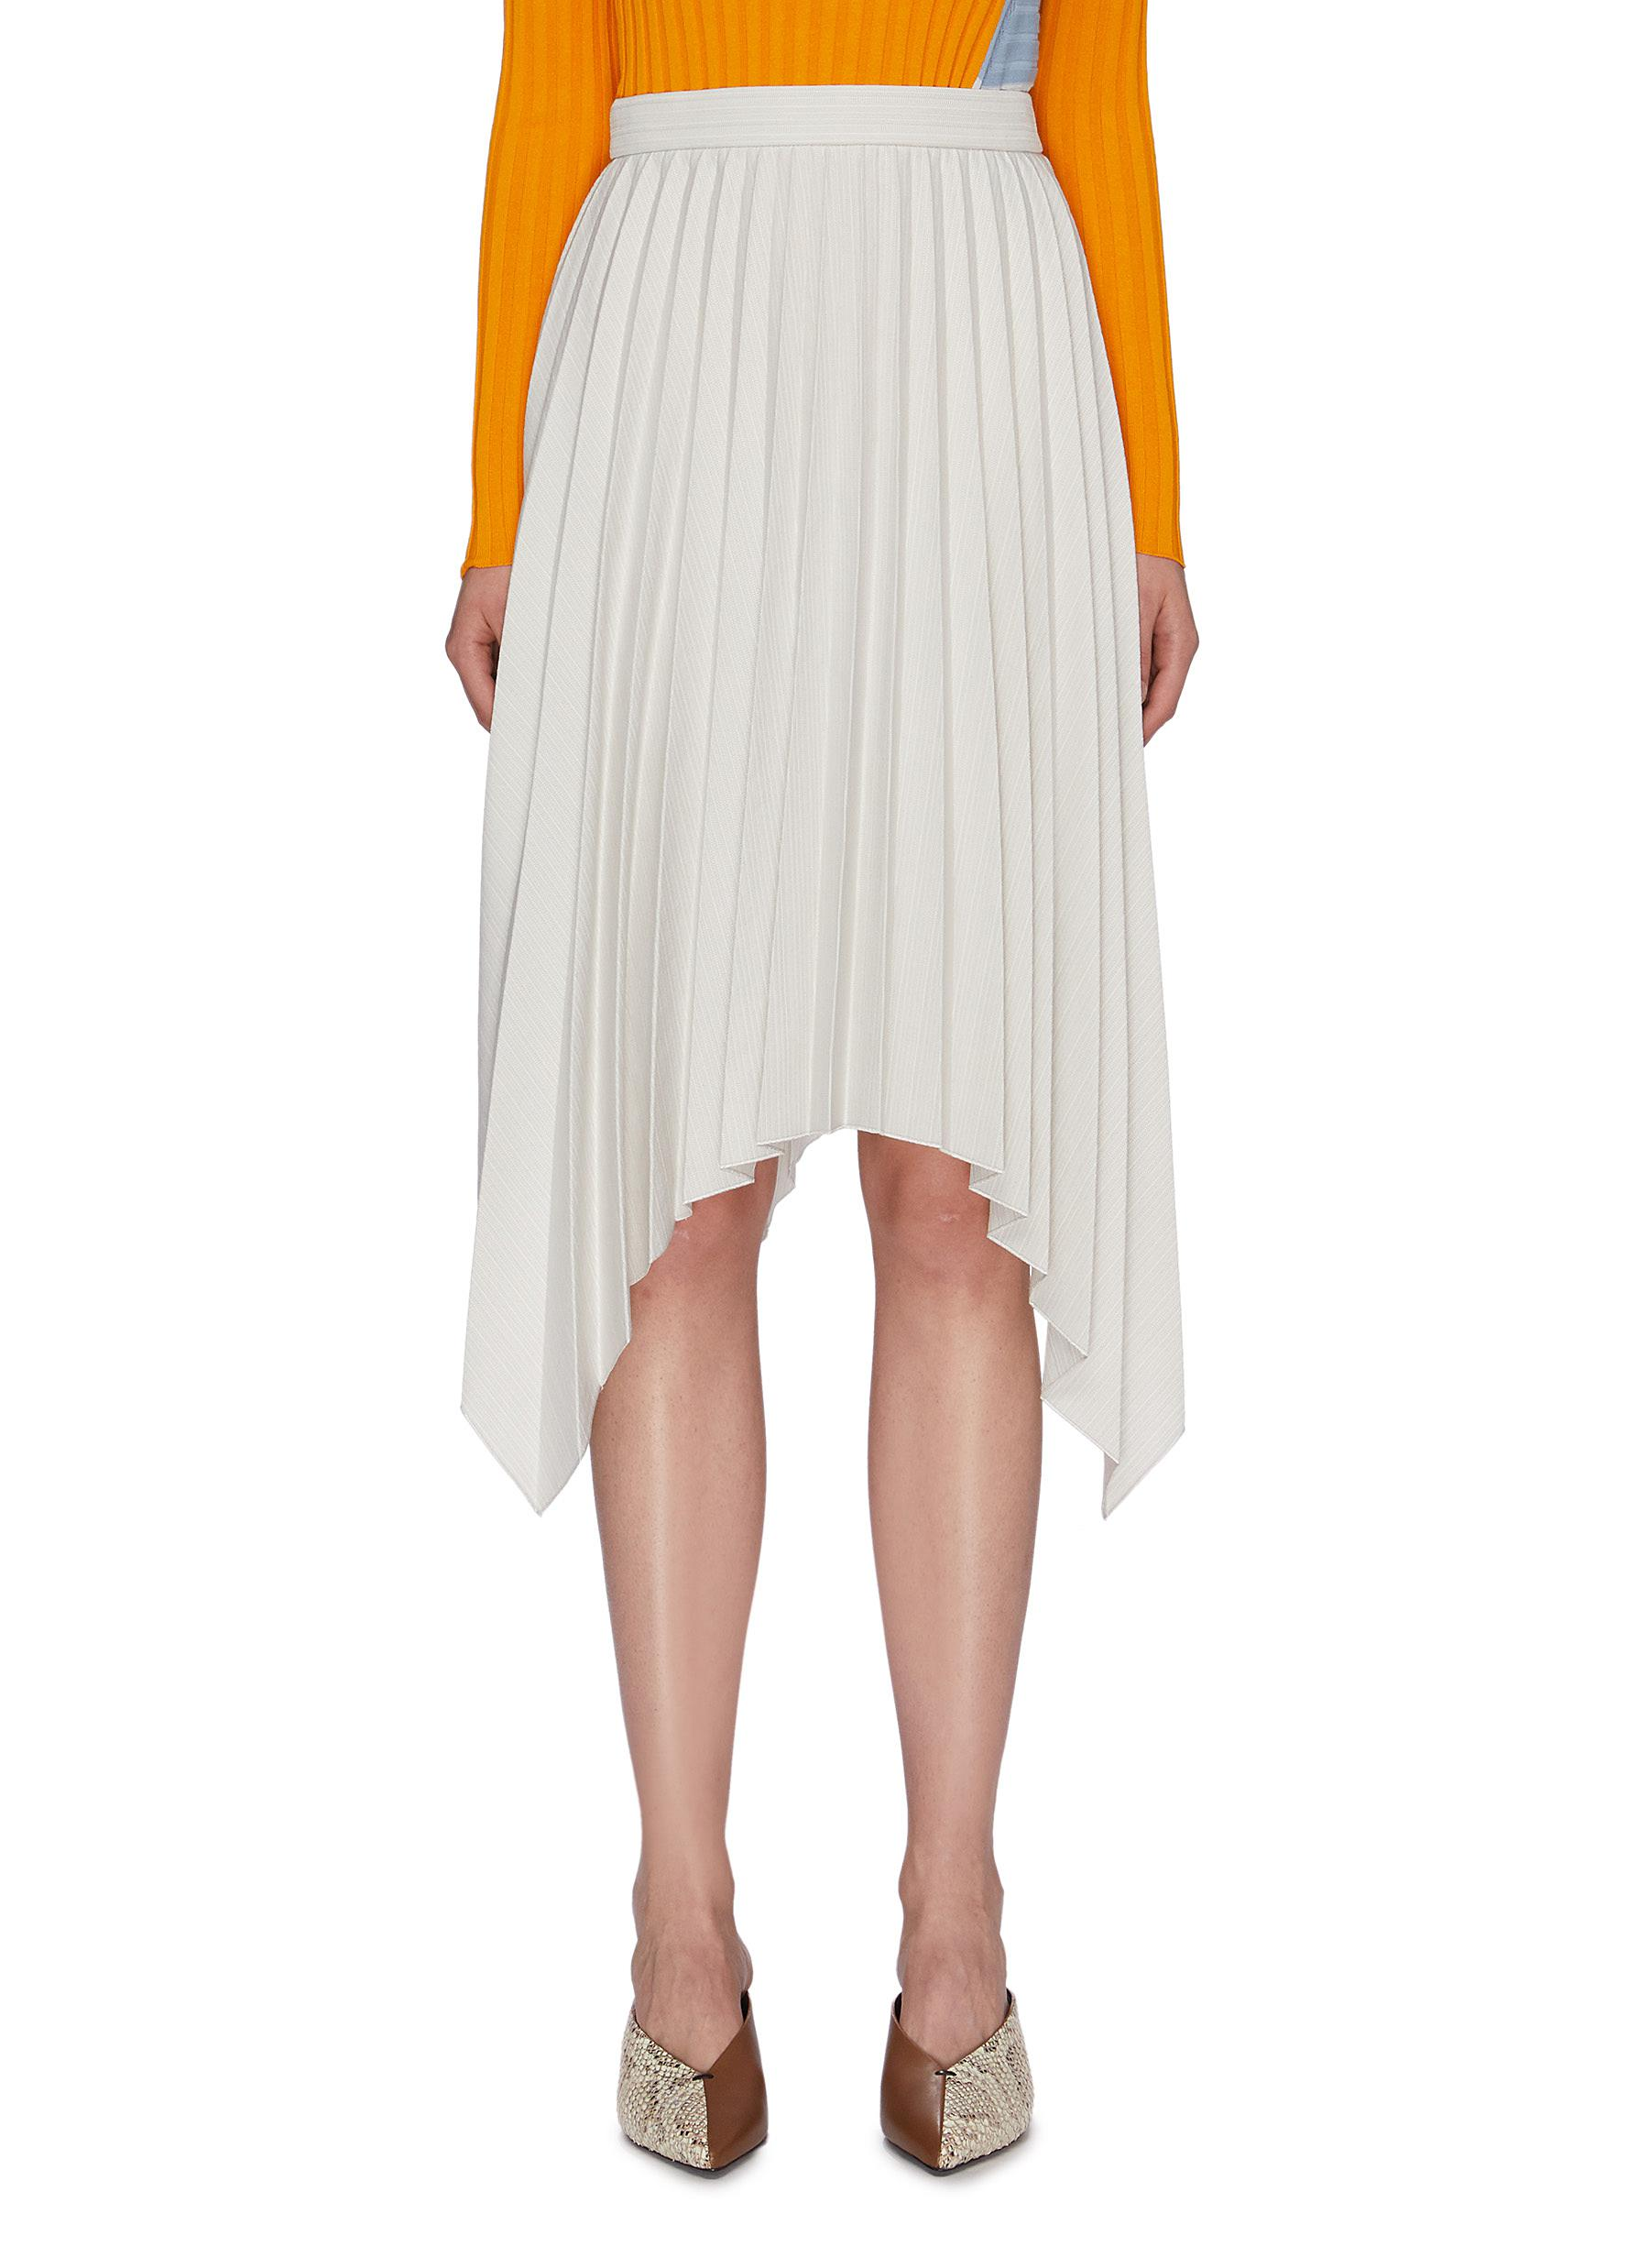 Handkerchief pleated skirt by Acne Studios